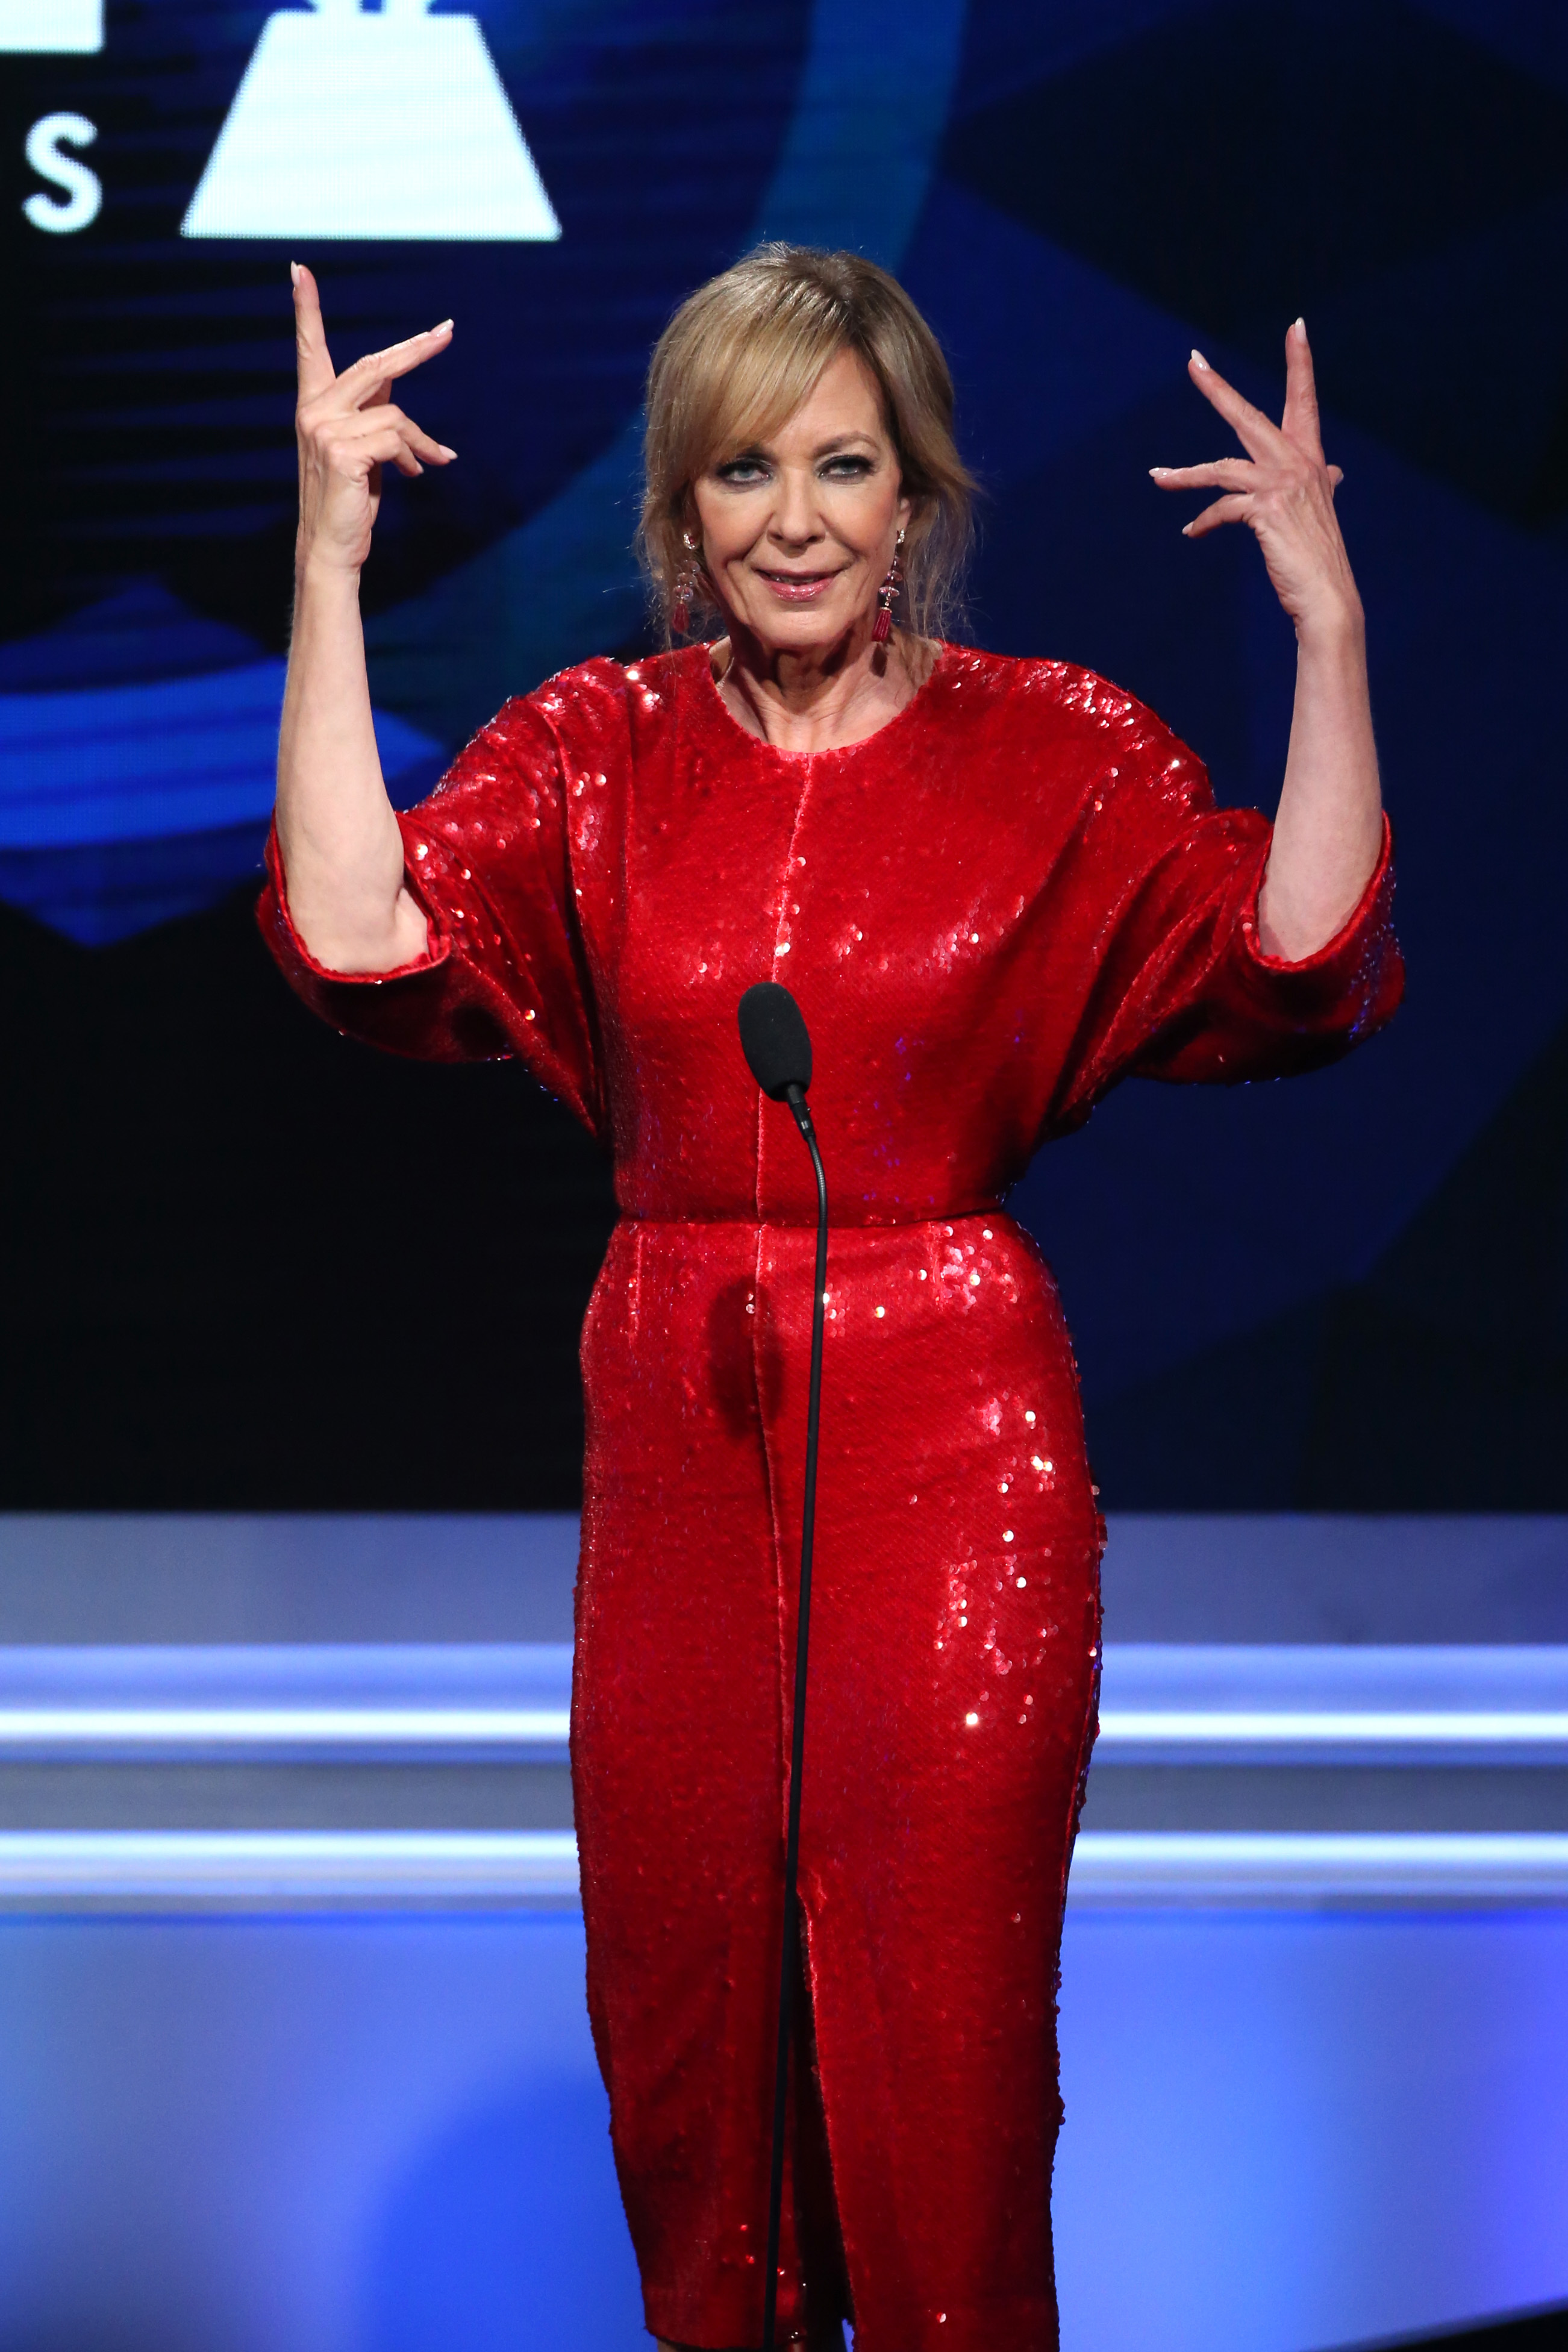 Allison Janney appears at the 30th Annual GLAAD Media Awards in Los Angeles on March 28, 2019.